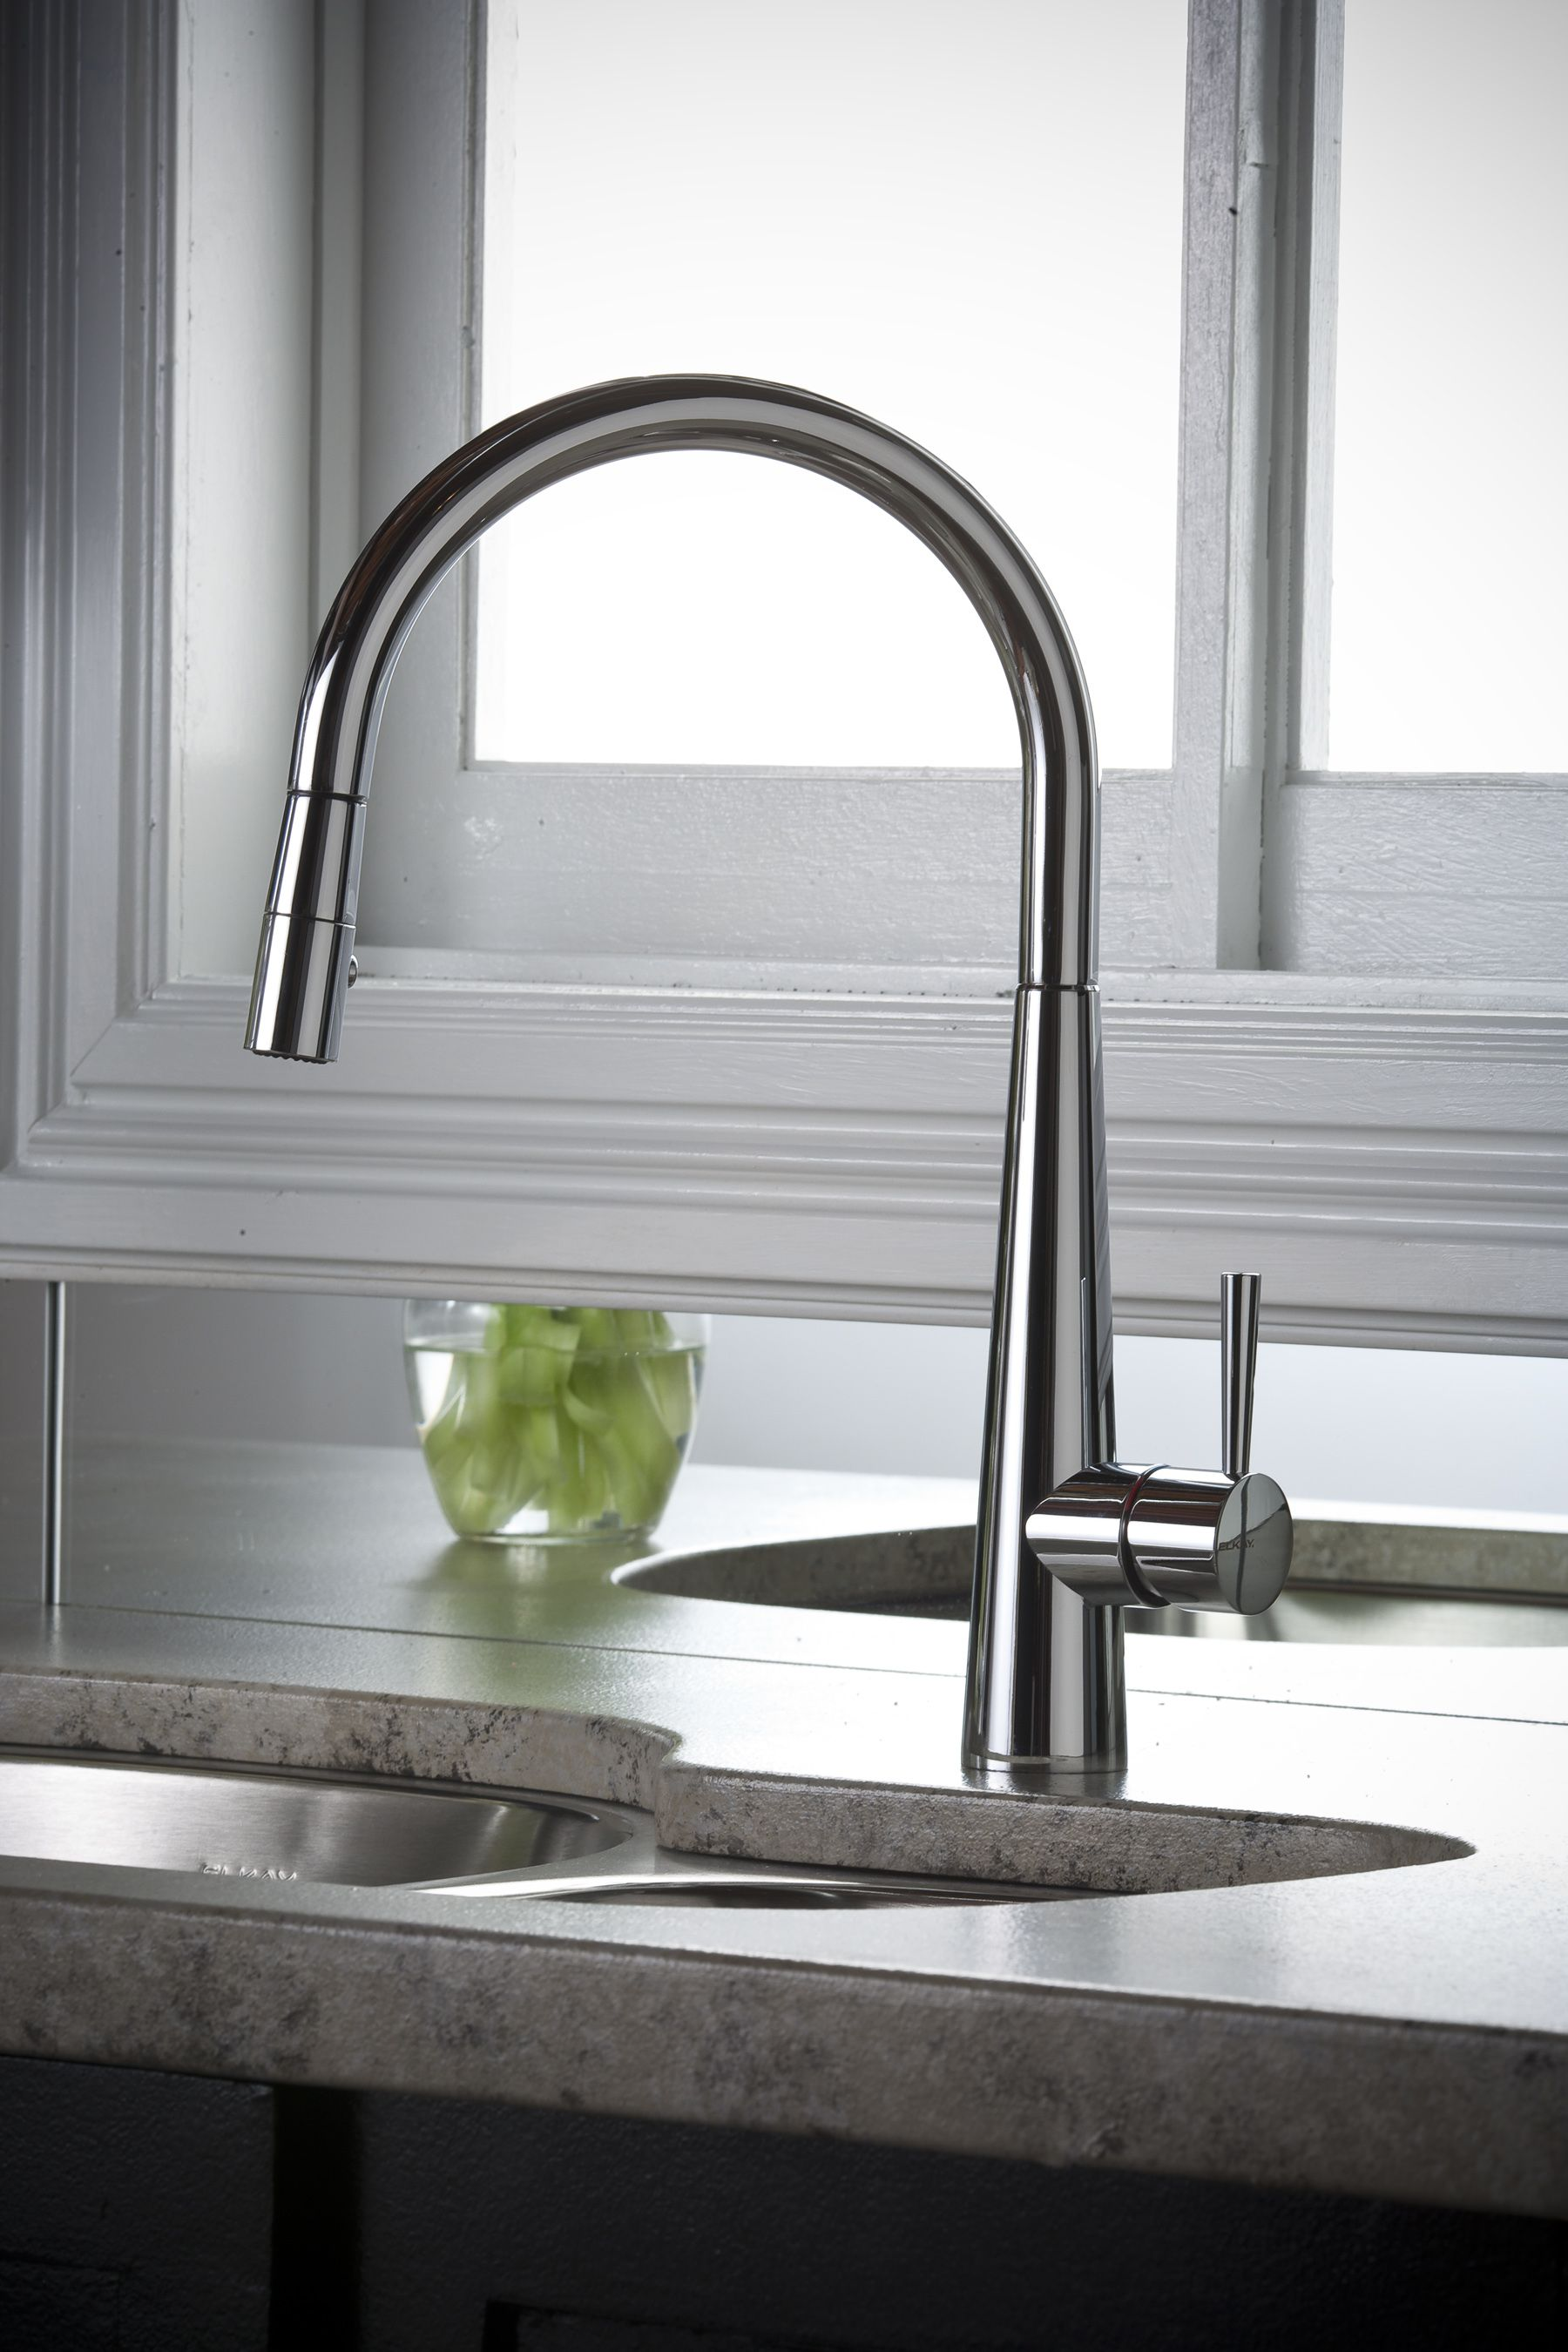 Elkay Harmony Single Hole Kitchen Faucet with Pull-down Spray and ...